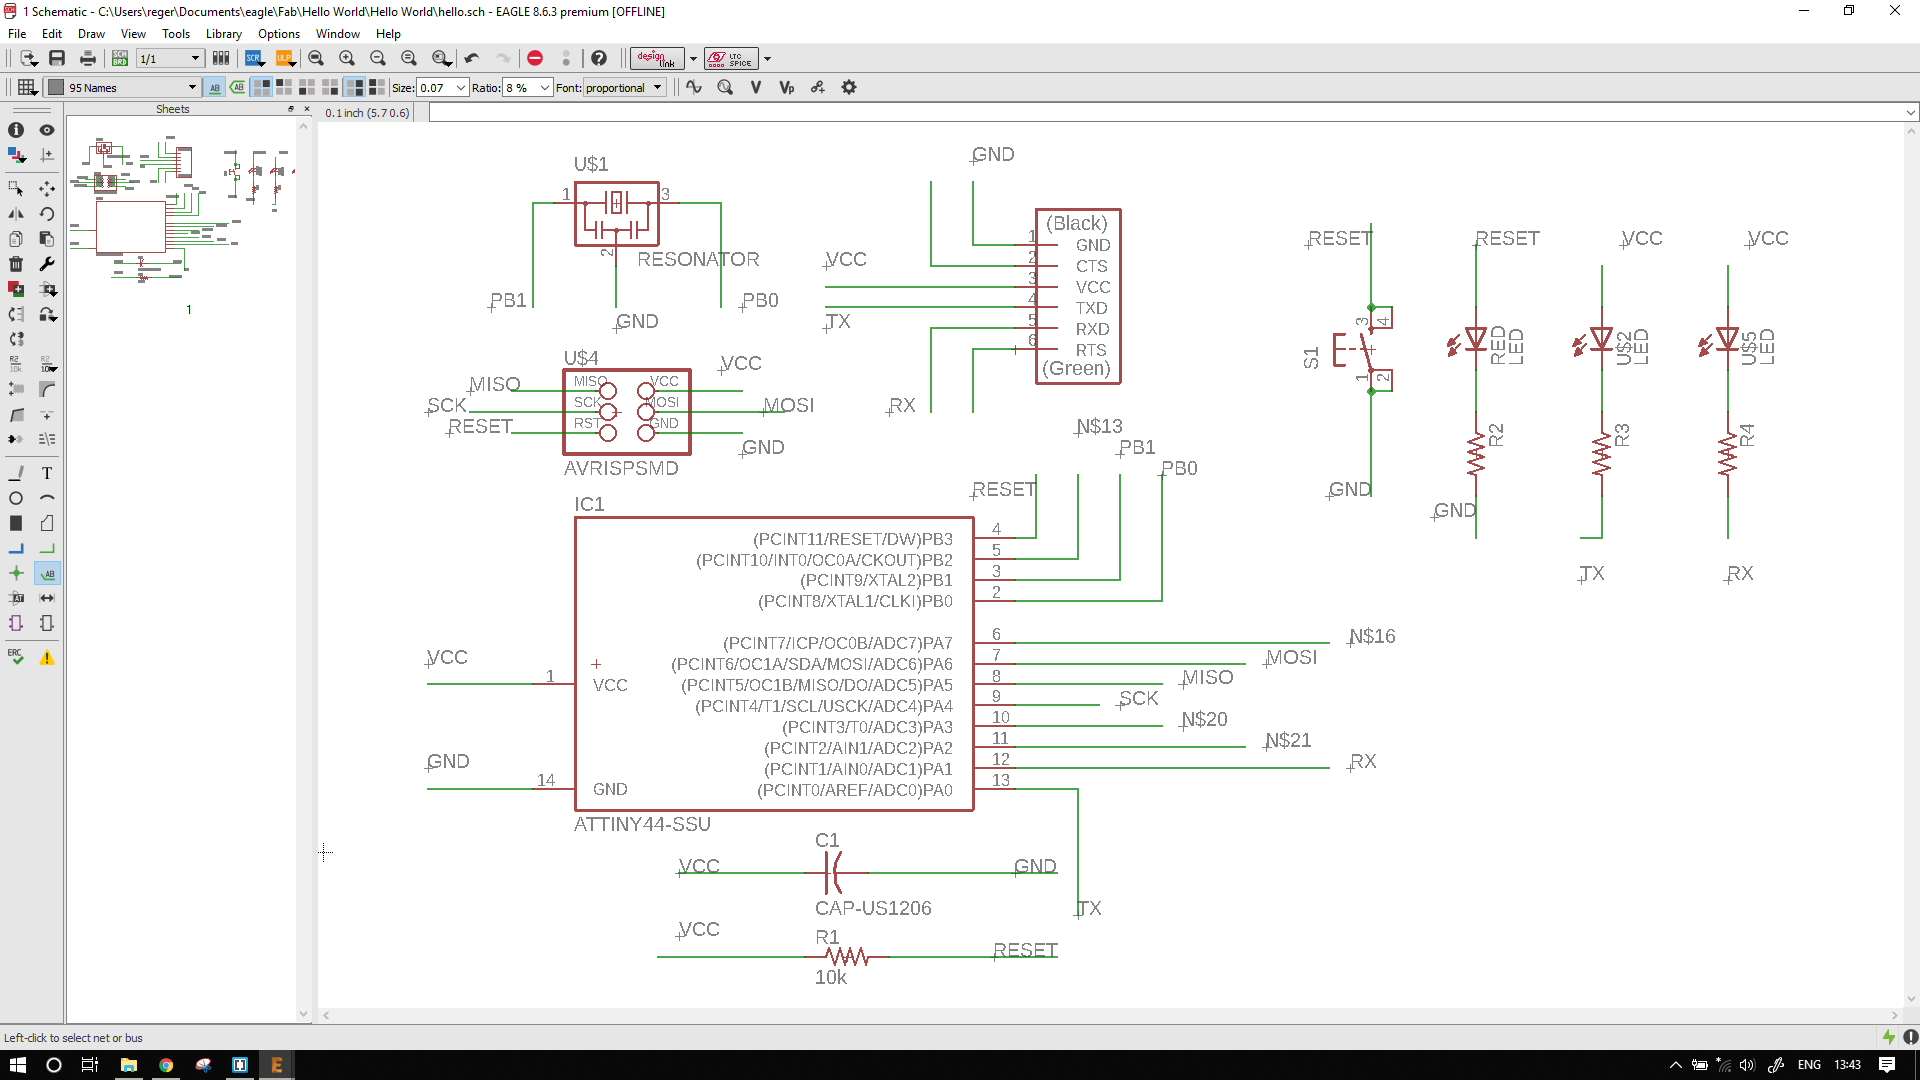 Rohan Rege Fabacademy Border Around The Circuit Image Cut Board To Size Clean Copper Then Naming Them Uniquely This Helps Get A Route And Schematic Verify